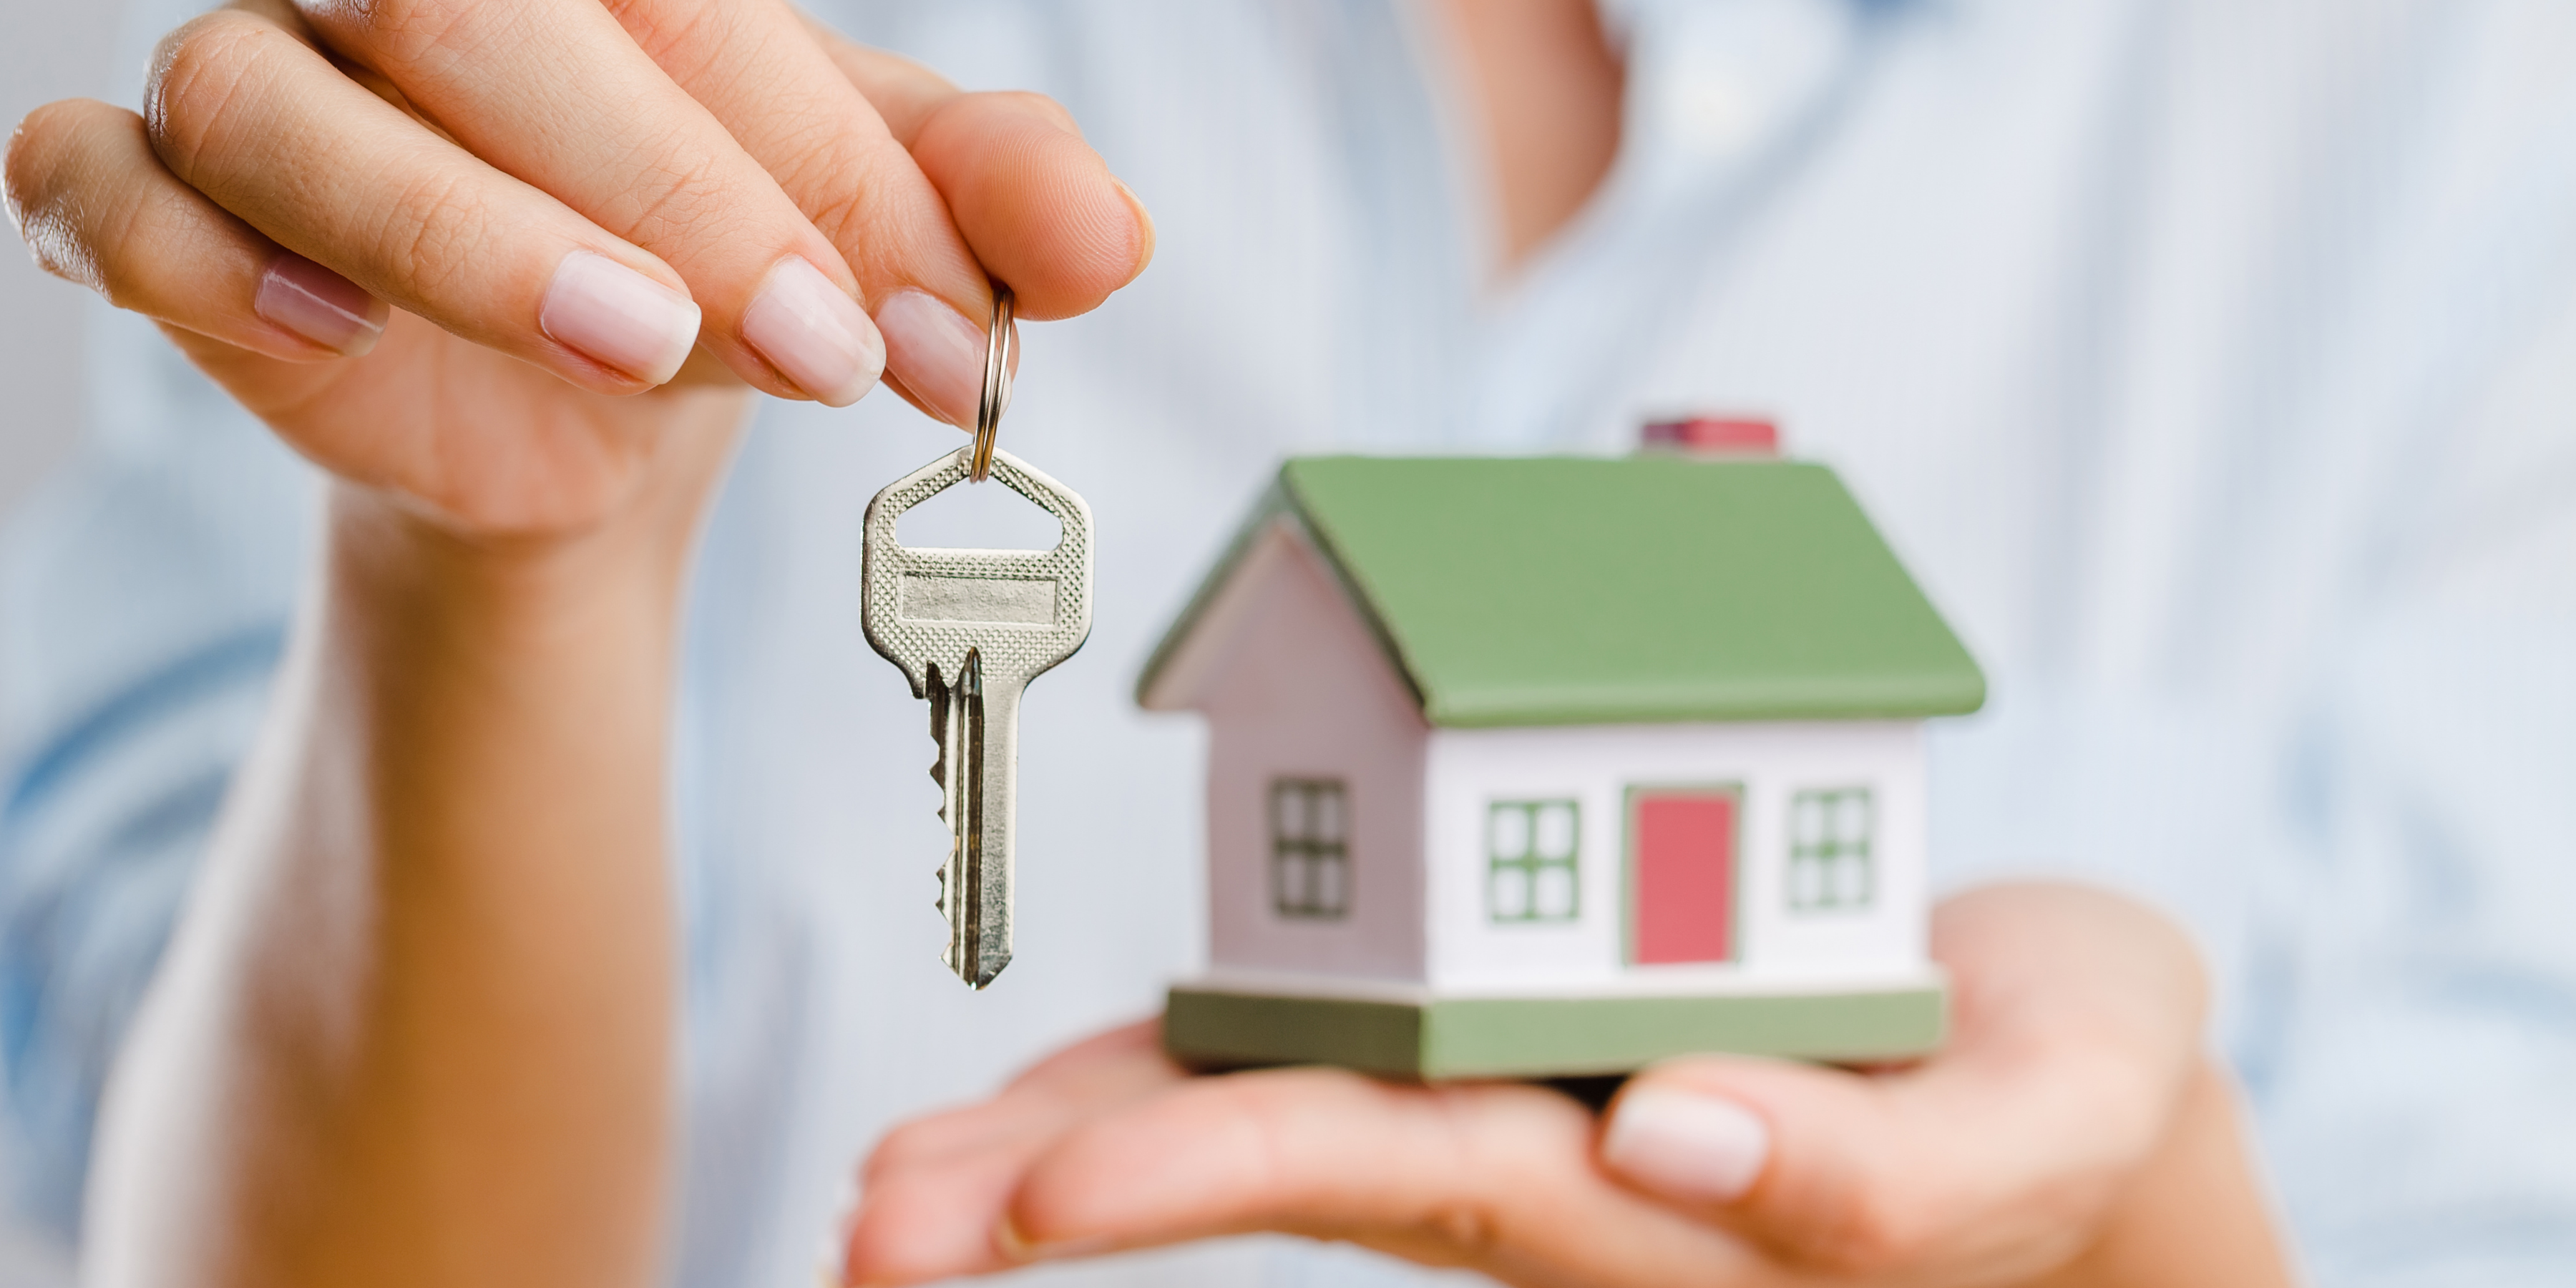 Paying mortgage loans with your credit card through CardUp